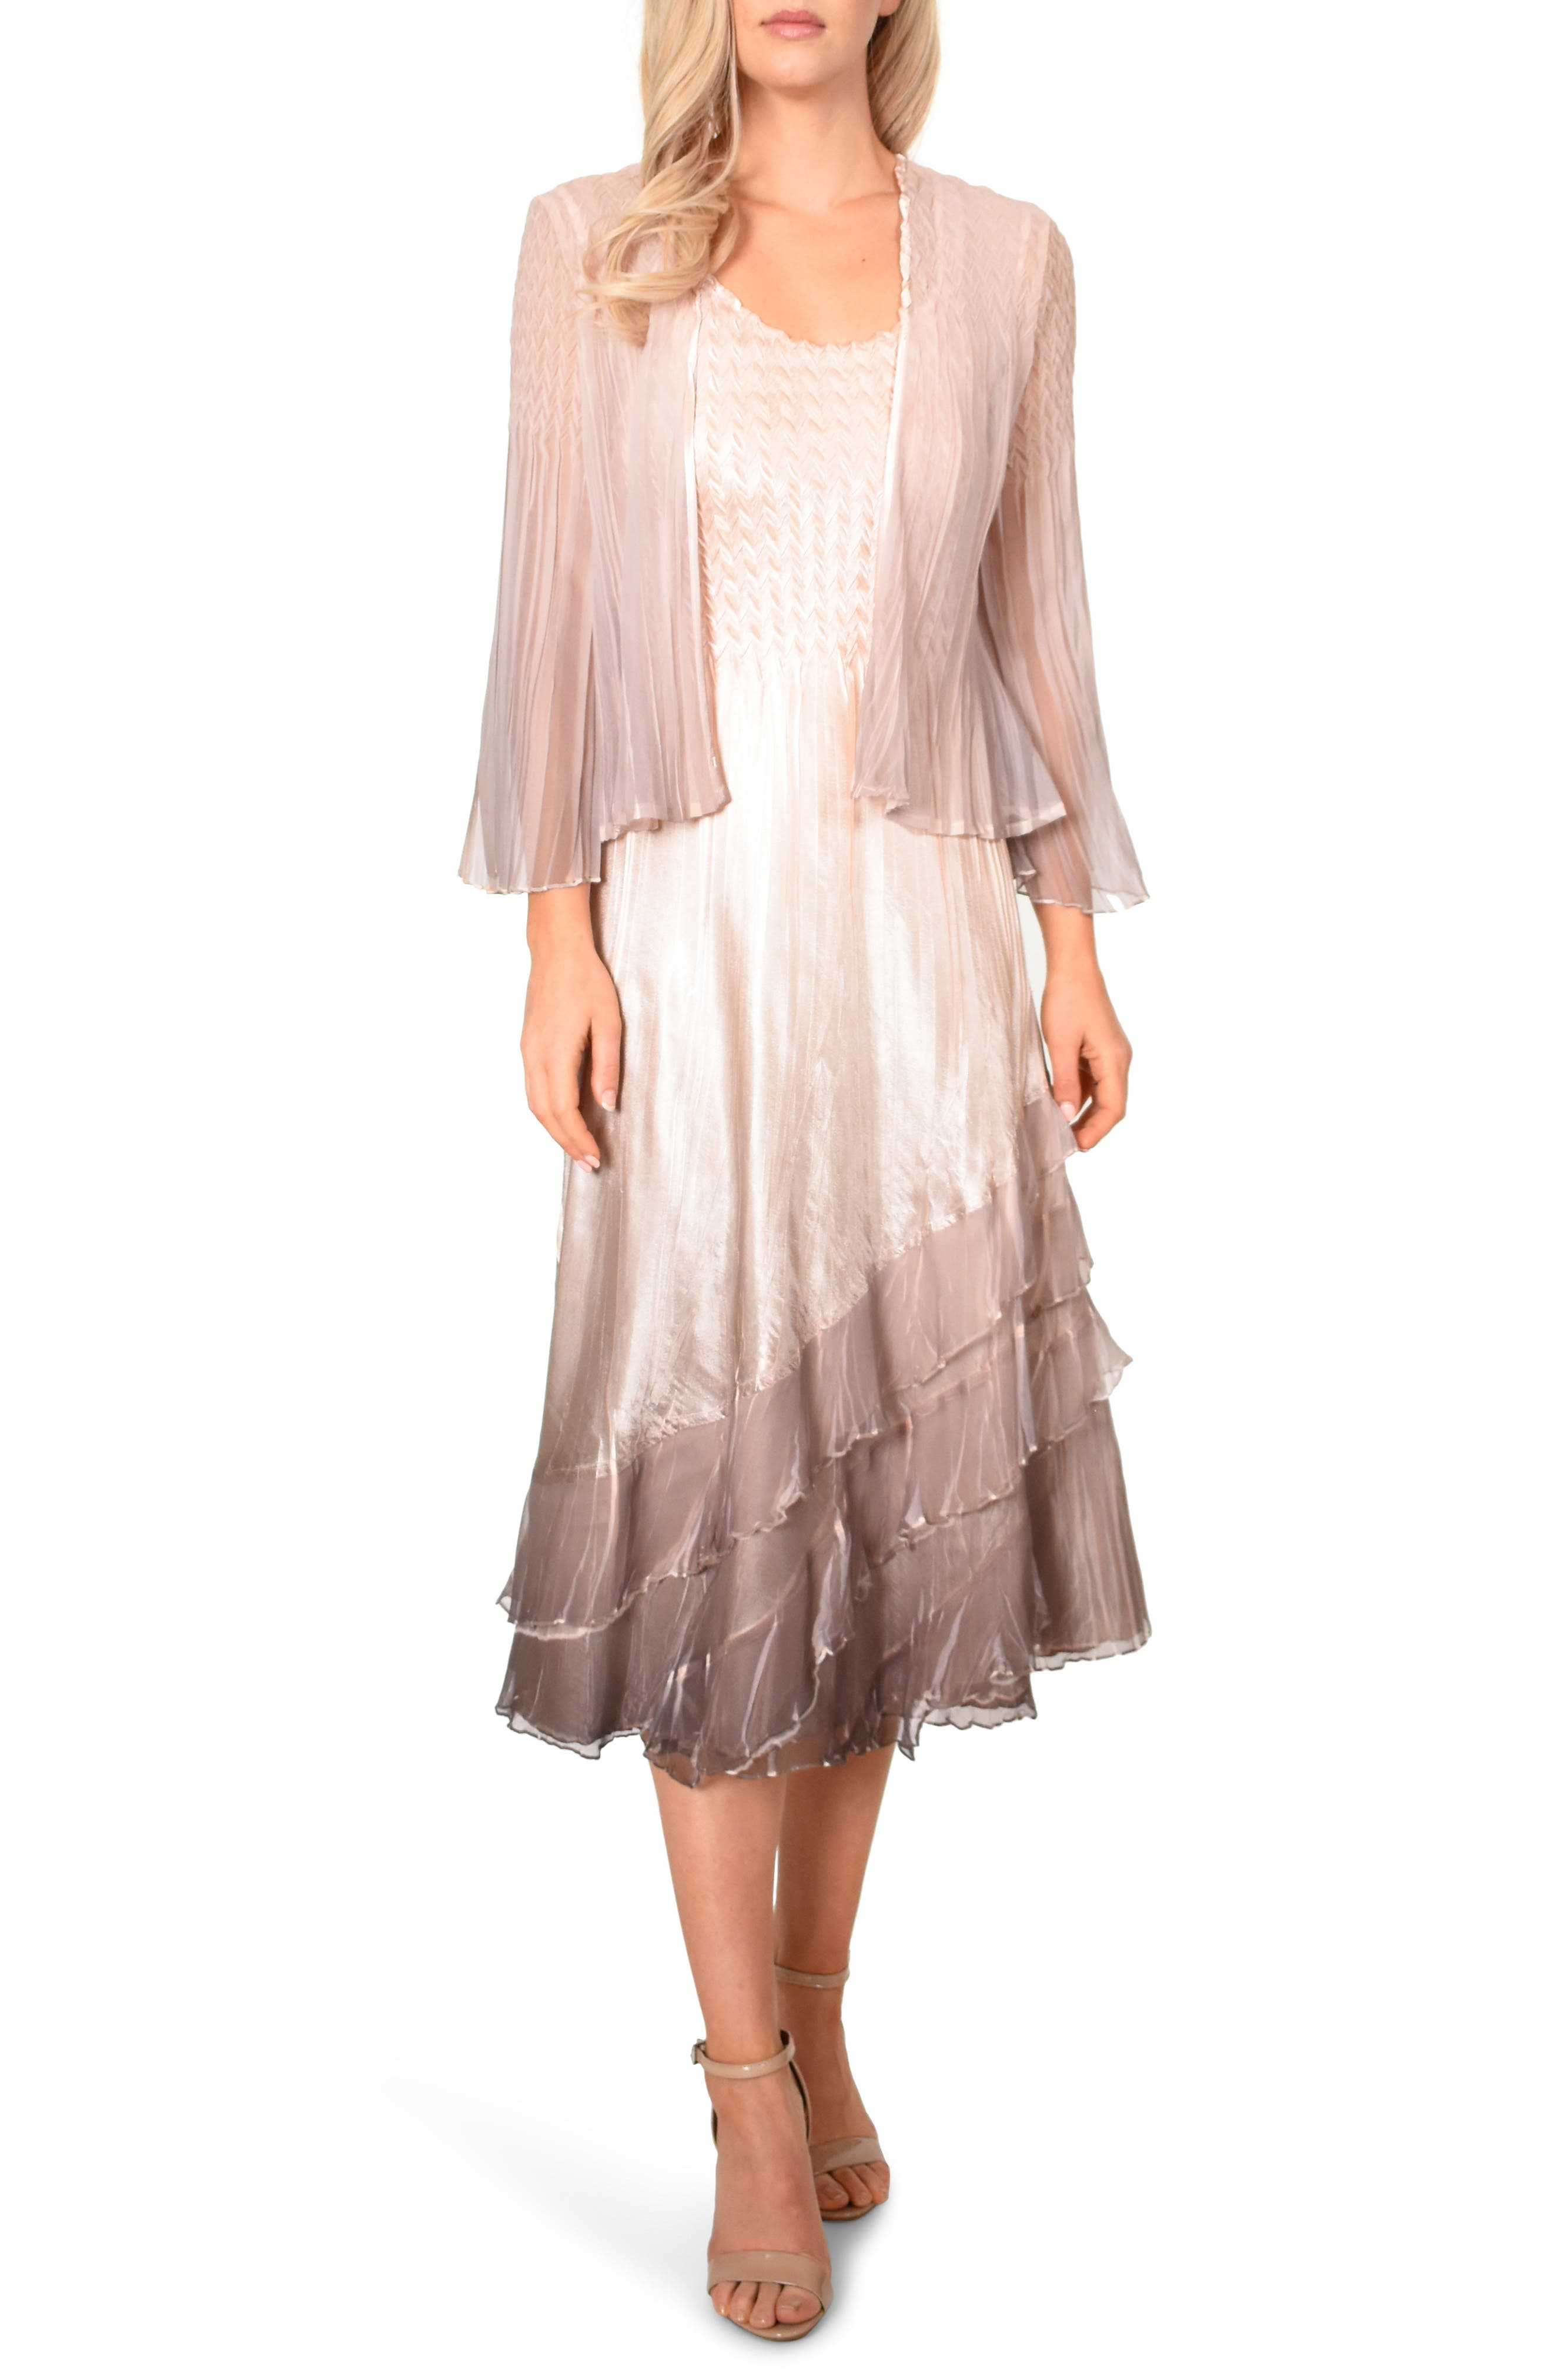 KOMAROV Charmeuse & Chiffon Cocktail Dress with Jacket, Main, color, VINTAGE ROSE CAFE OMBRE